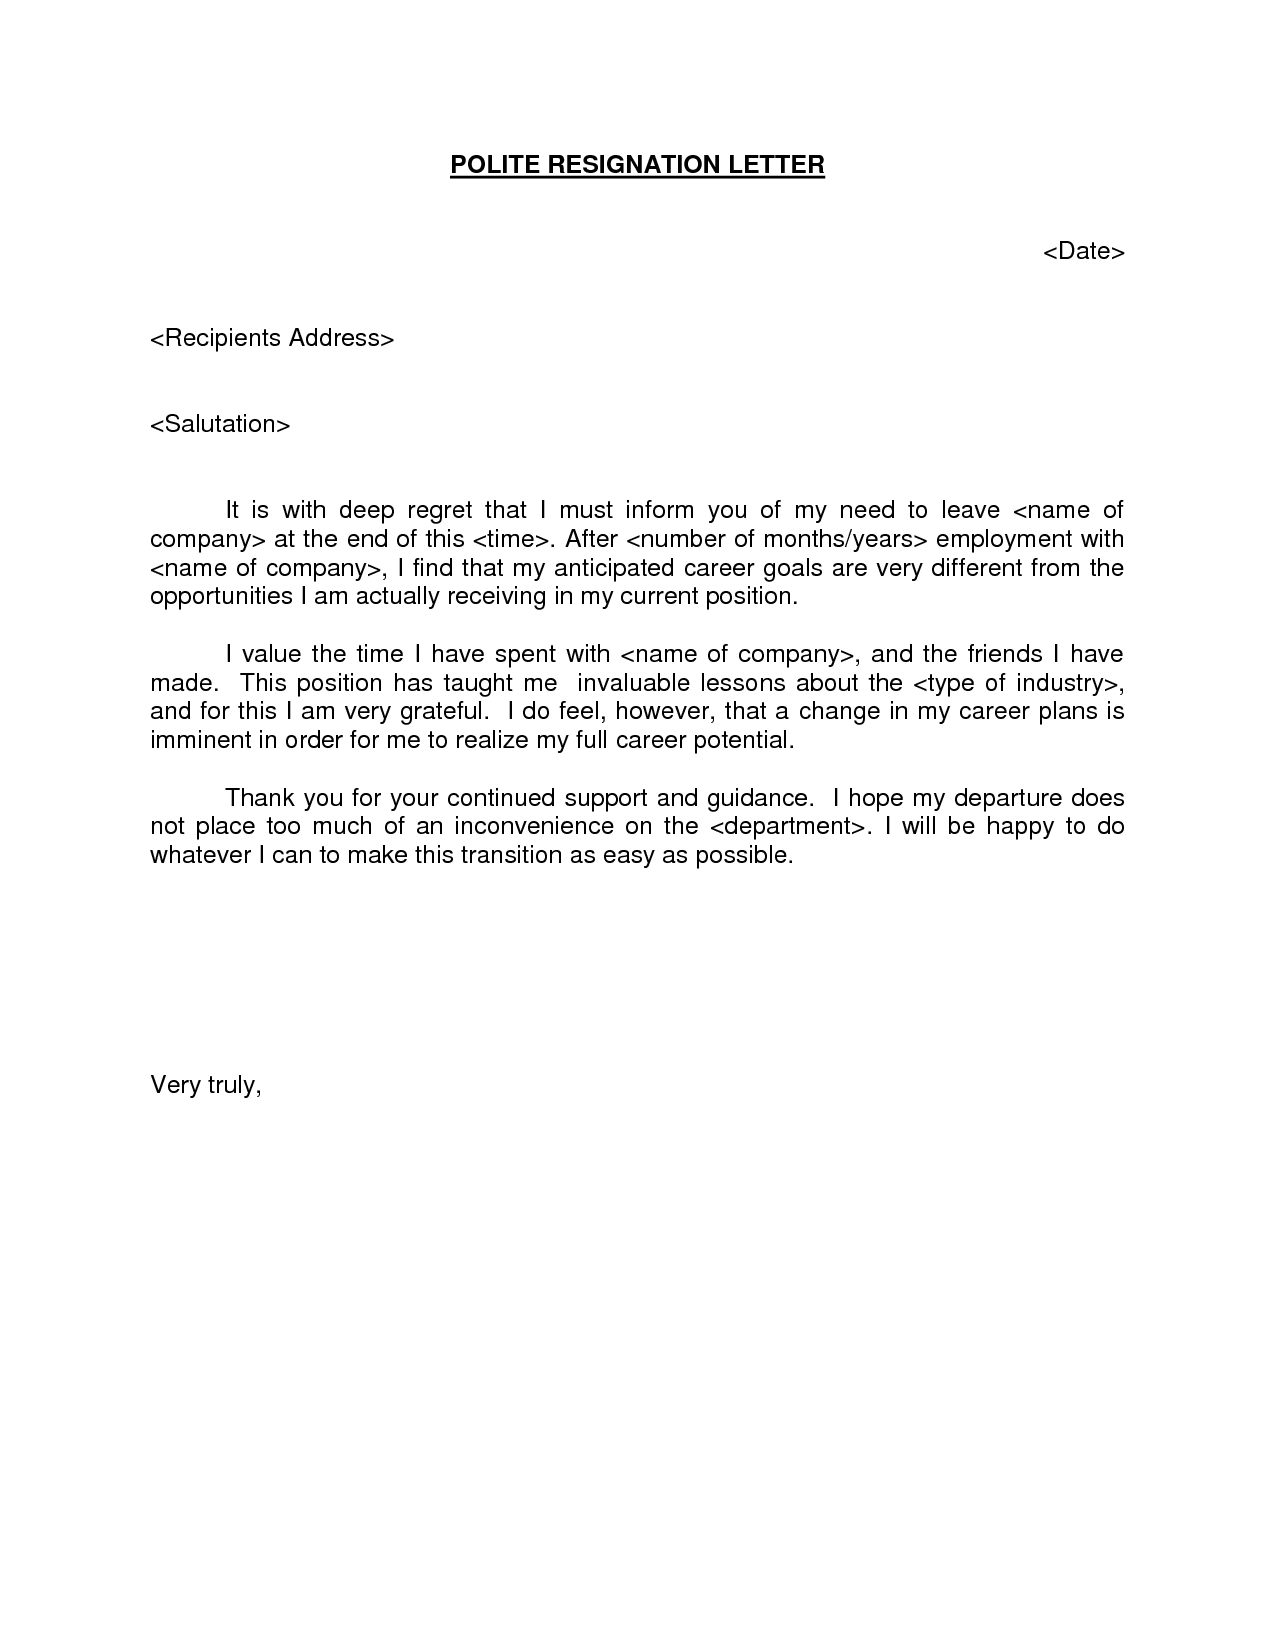 printable sample letter of resignation form online attorney polite resignation letter bestdealformoneywriting a letter of resignation email letter sample